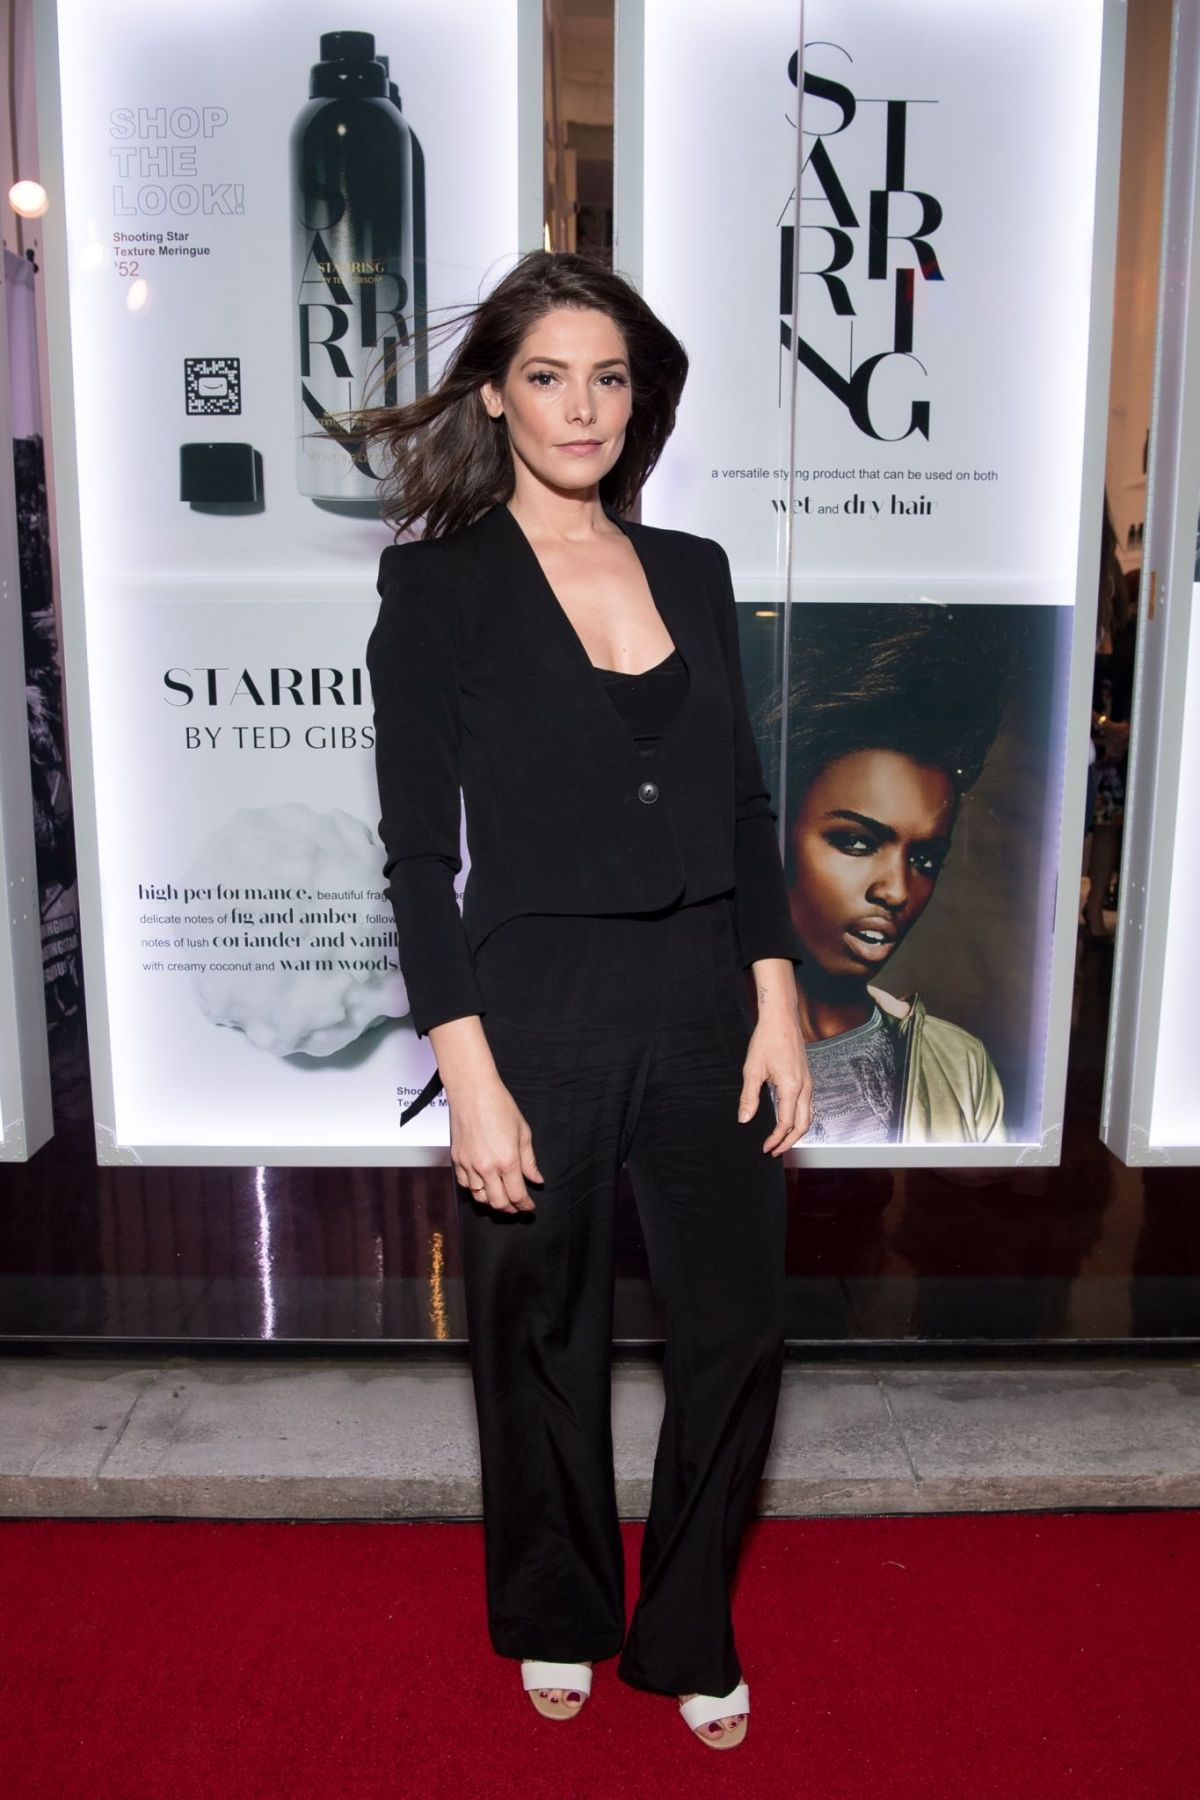 ASHLEY GREENE at Starring by Ted Gibson Salon Opening in ...